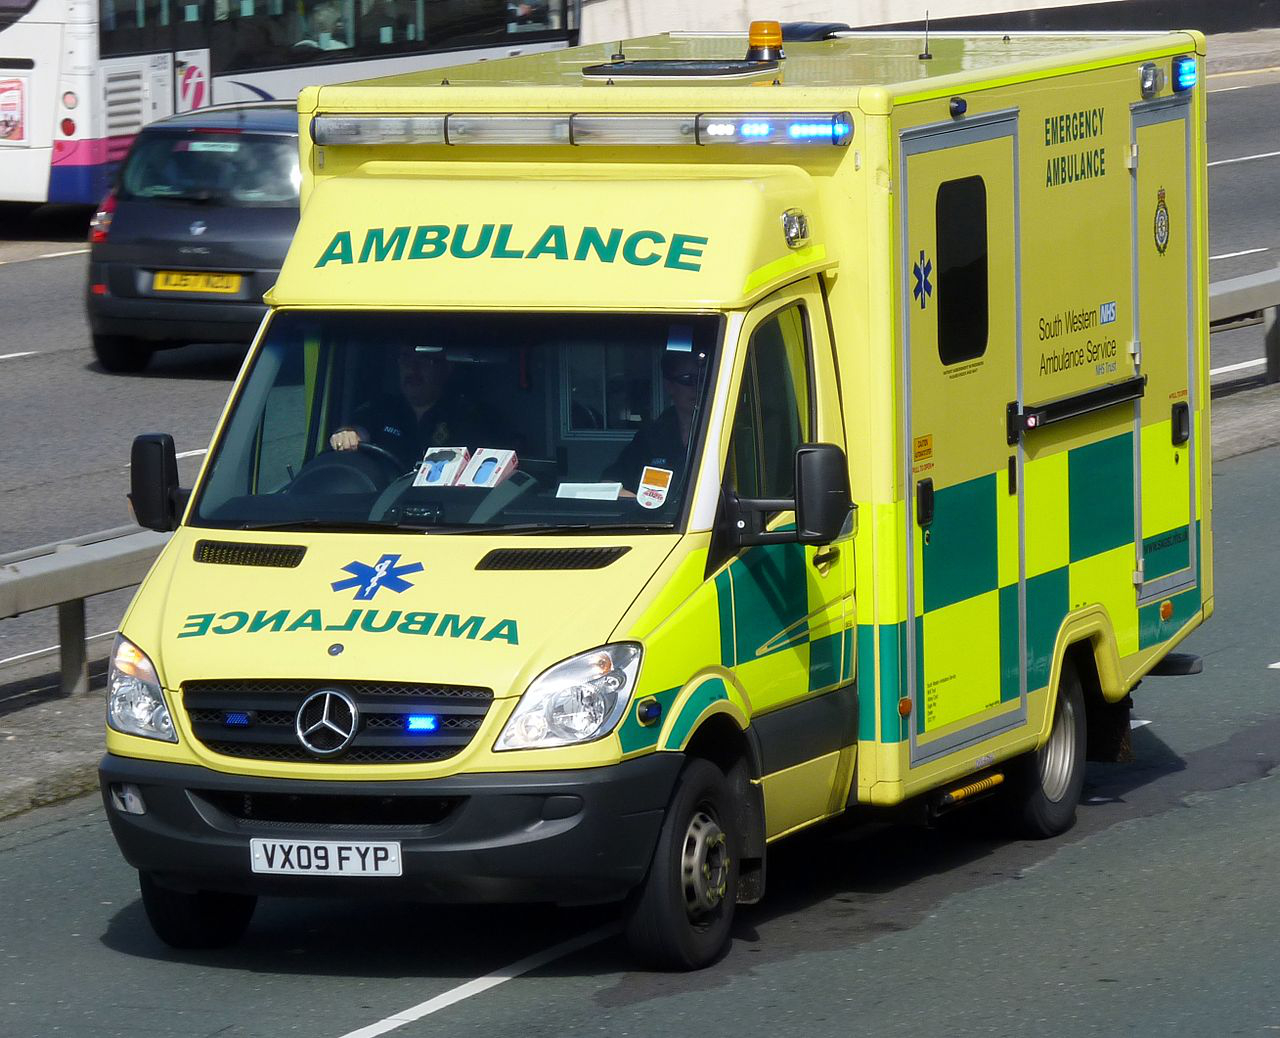 South Western Ambulance